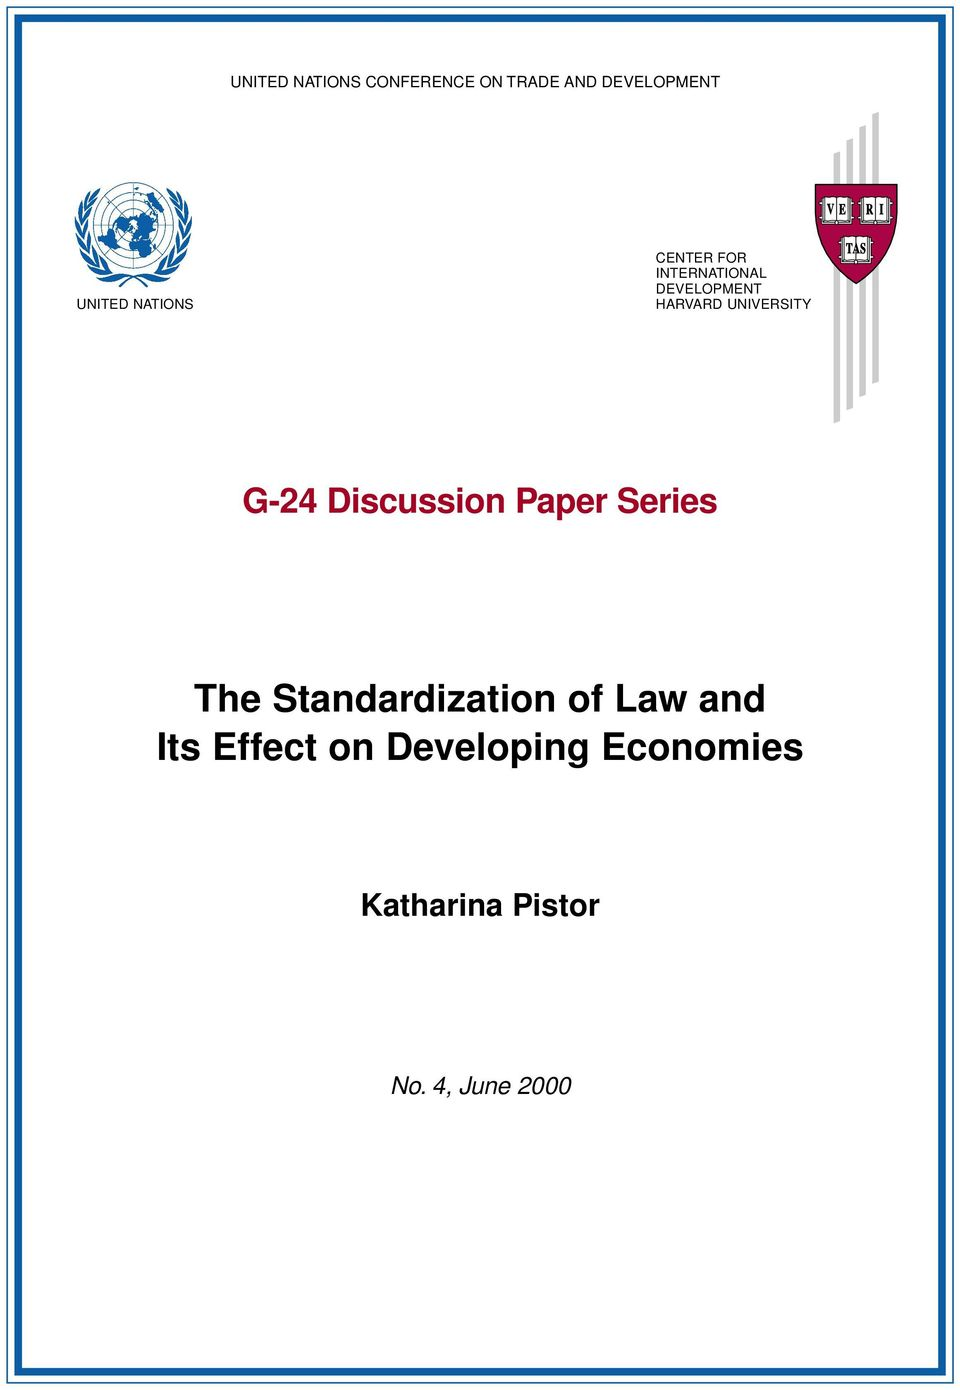 UNIVERSITY G-24 Discussion Paper Series The Standardization of